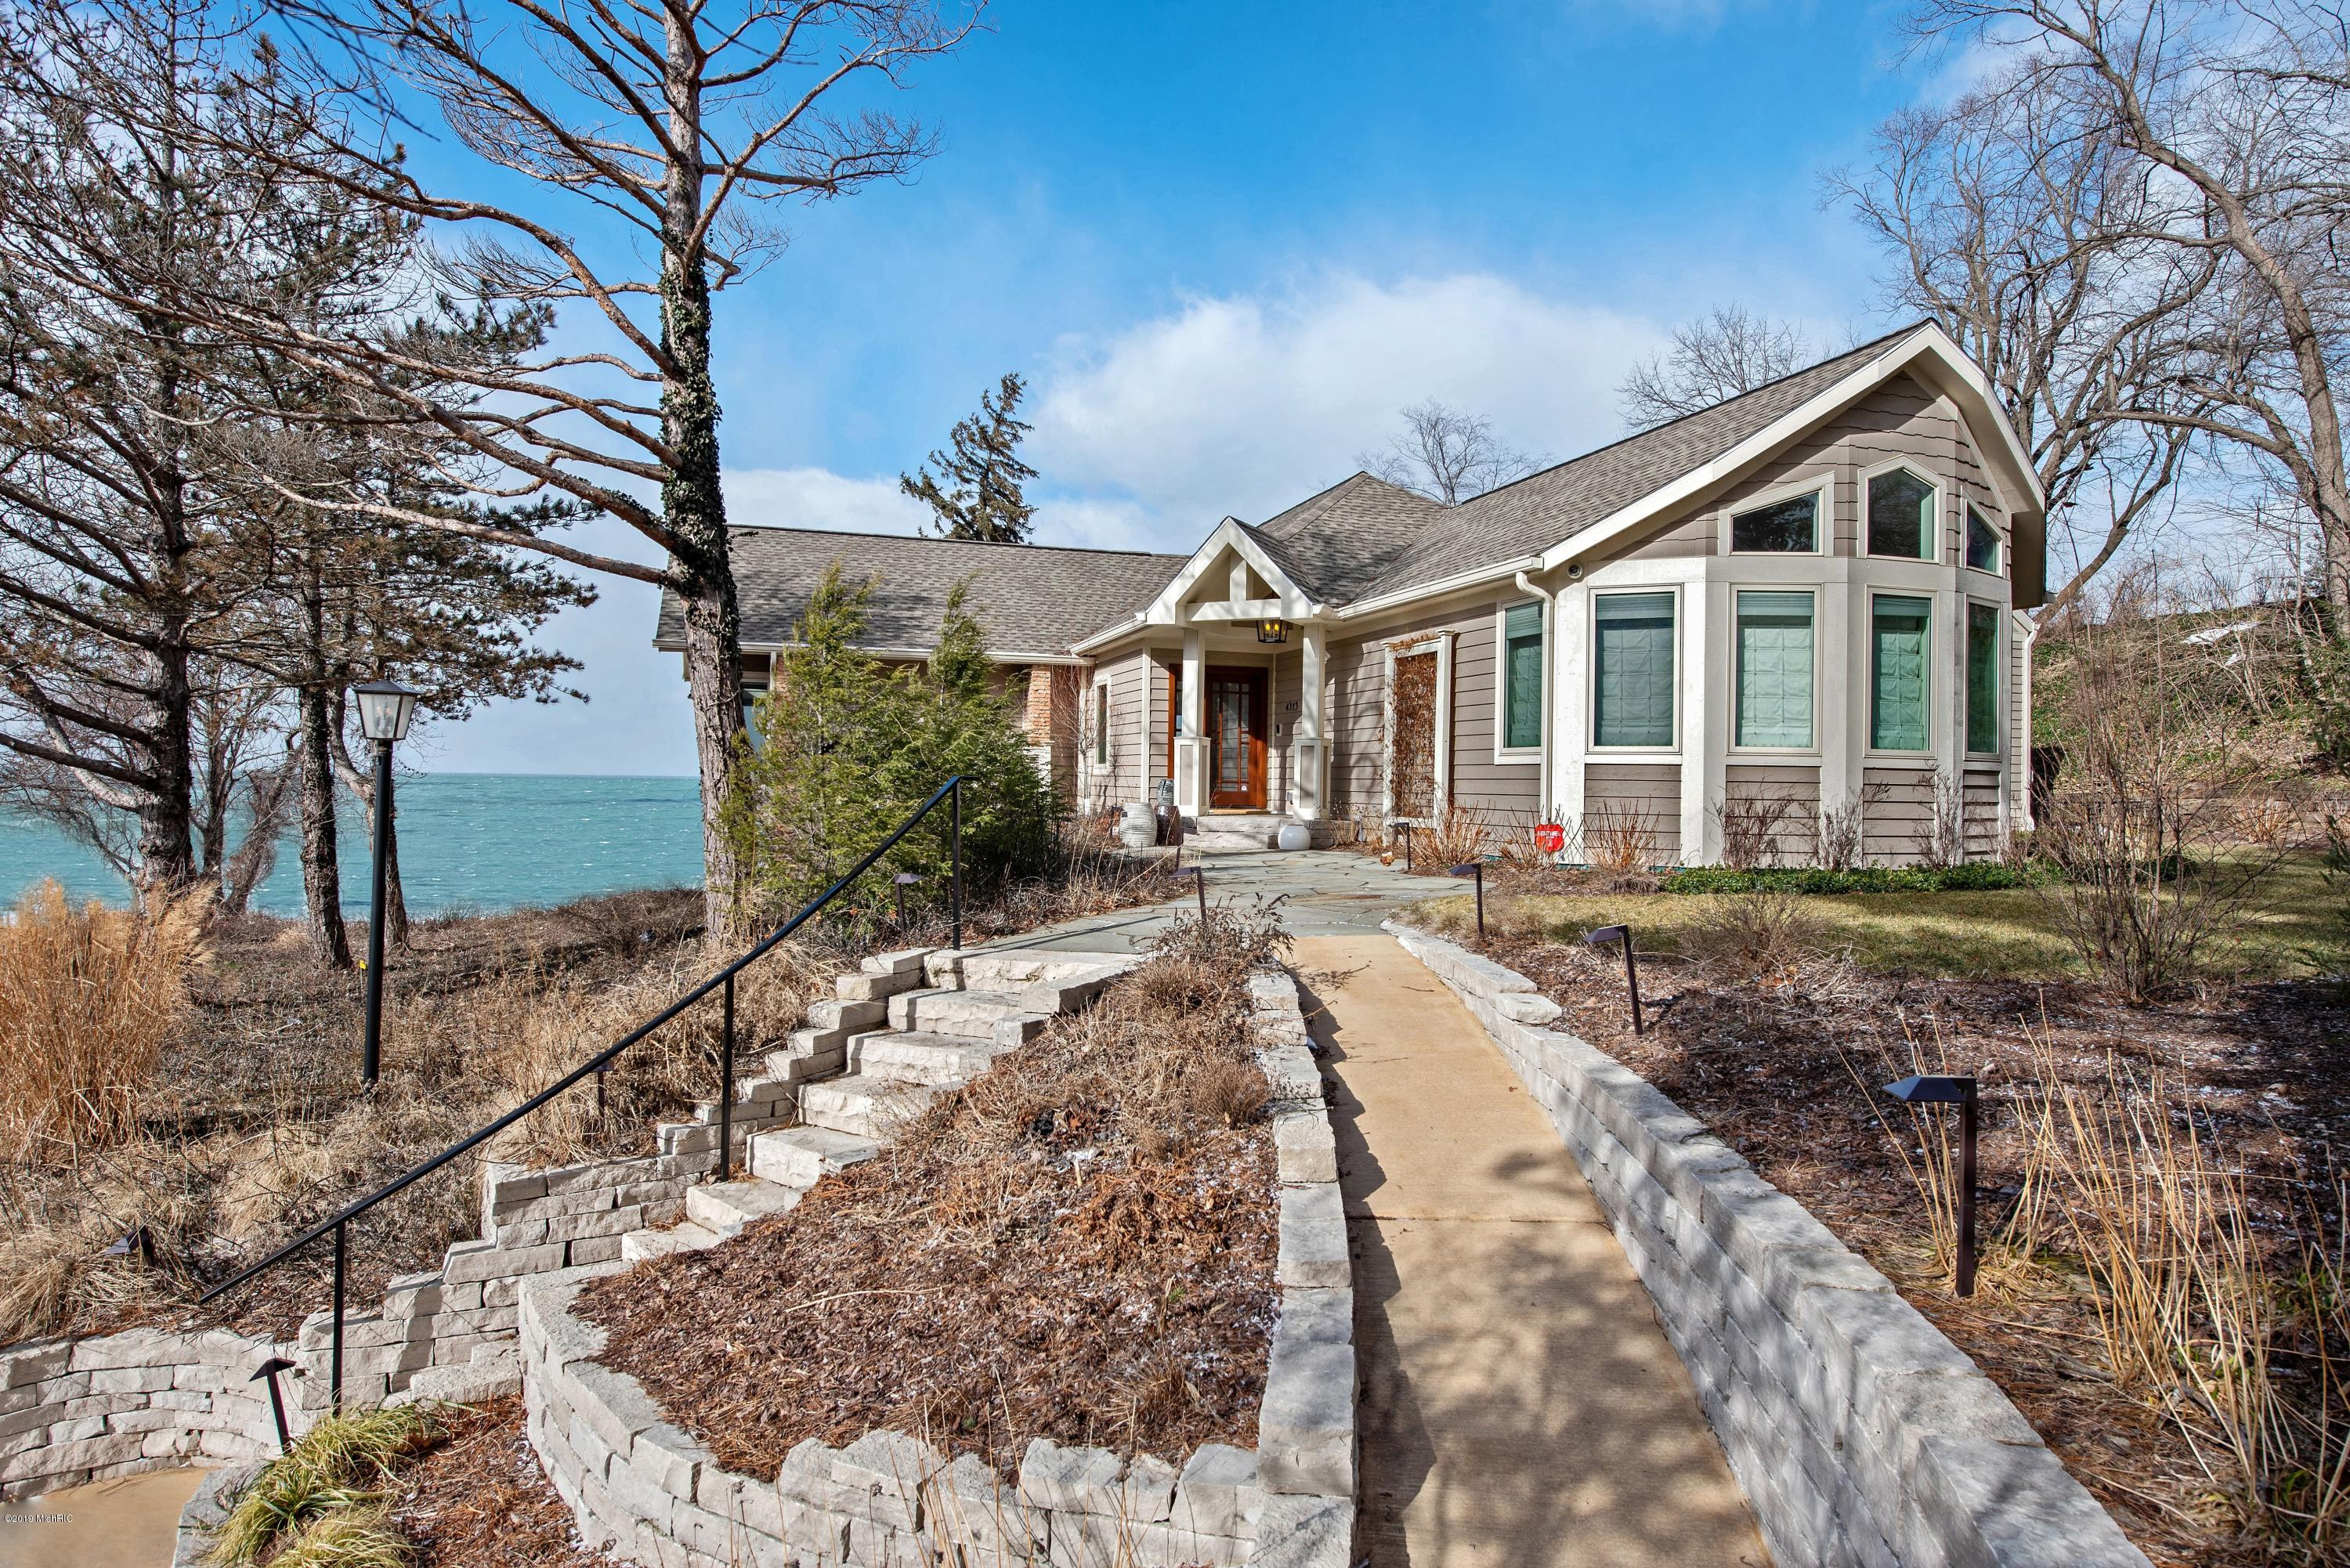 4315 LAKE SHORE DRIVE, NEW BUFFALO, MI 49117